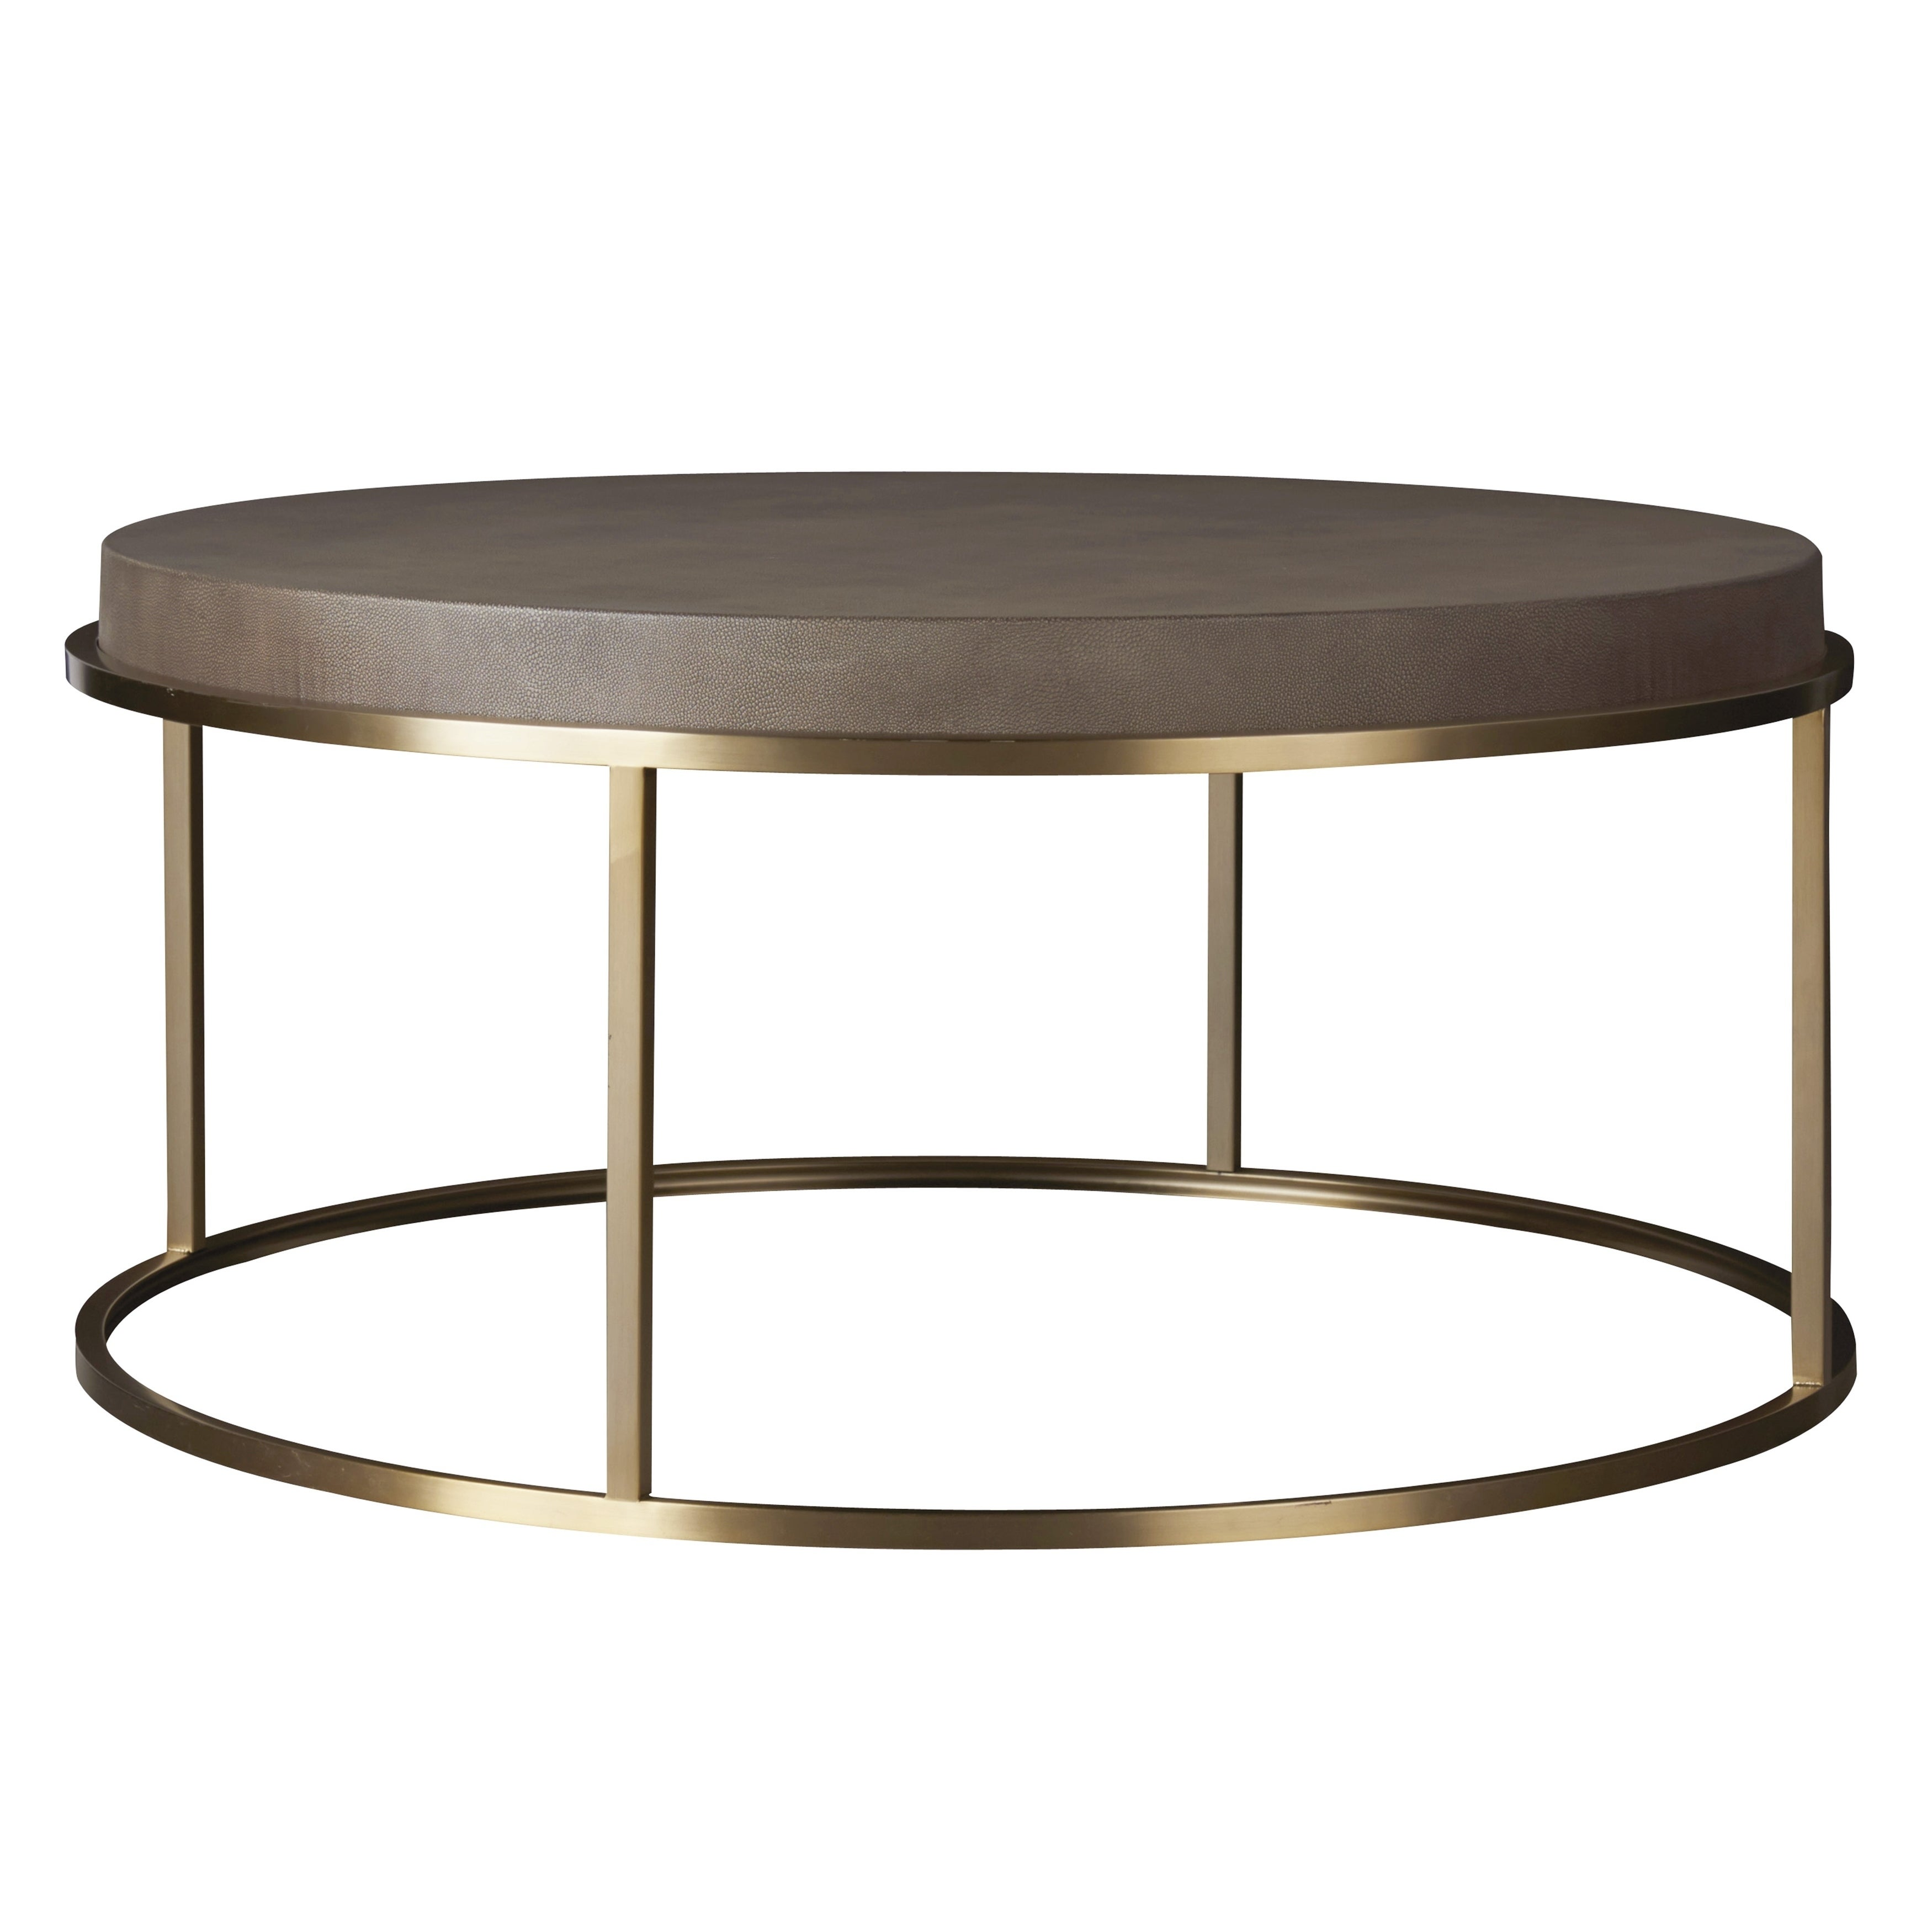 Shop modern portobello and brushed brass round bennett cocktail table free shipping today overstock com 18705486